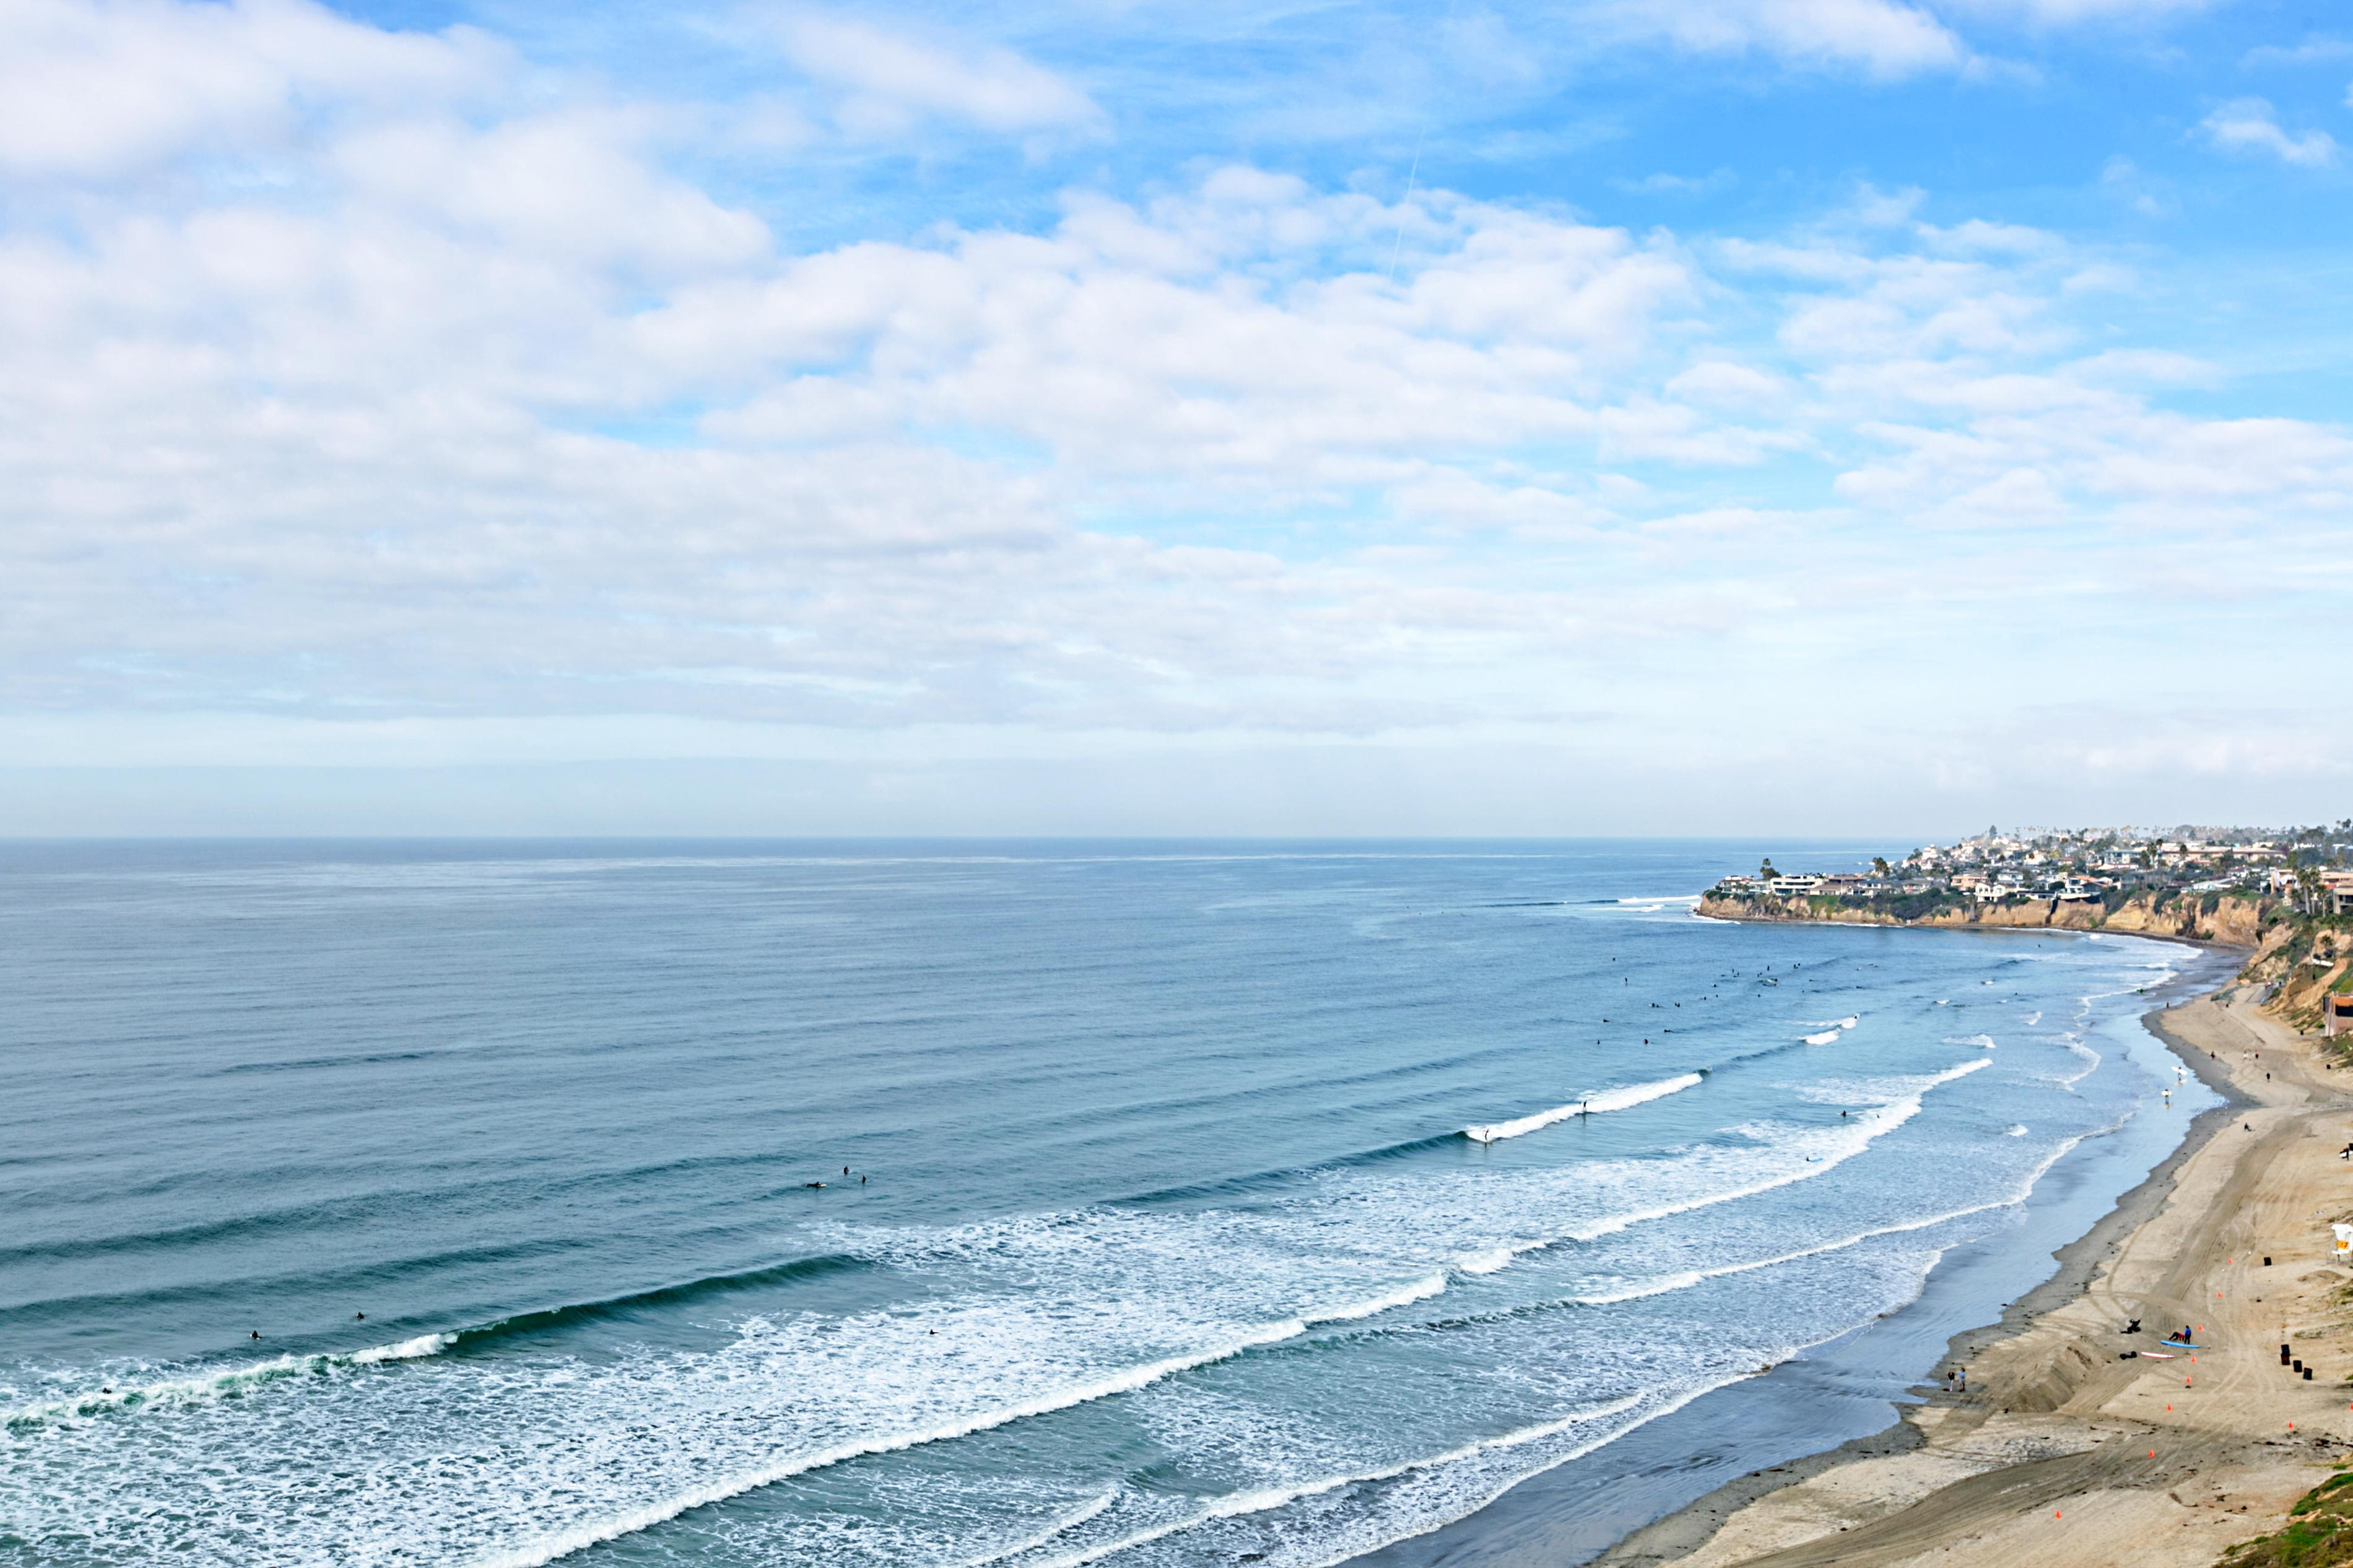 Unforgettable Pacific views await at your spacious oceanfront condo.